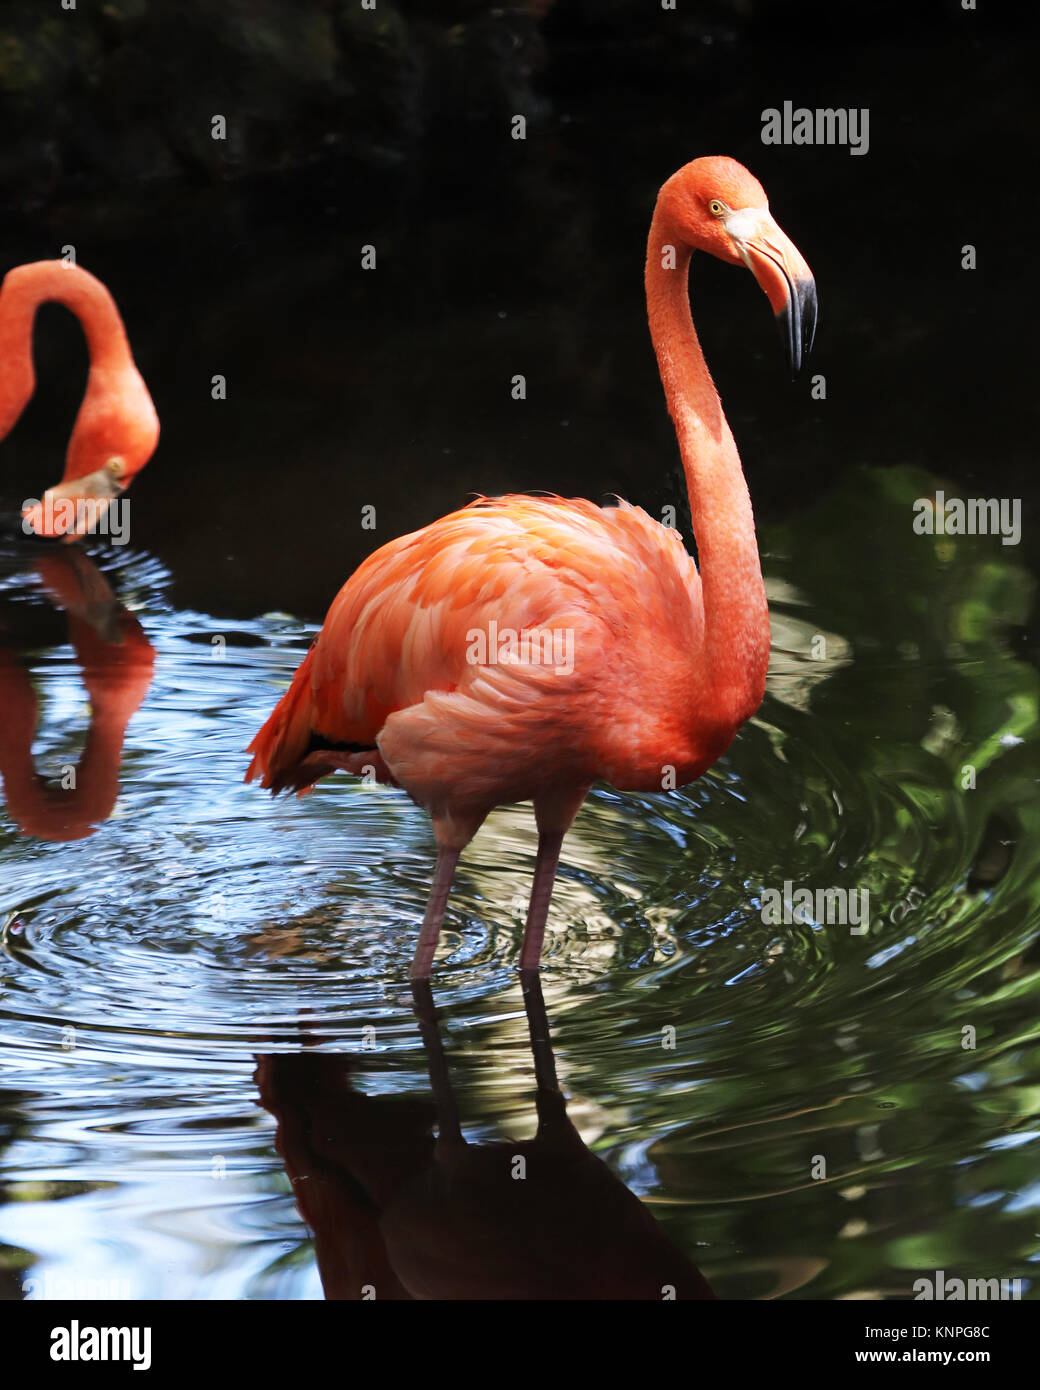 The bright pink feathers on the flamingo makes this water bird unable to be mistaken for any other bird - Stock Image